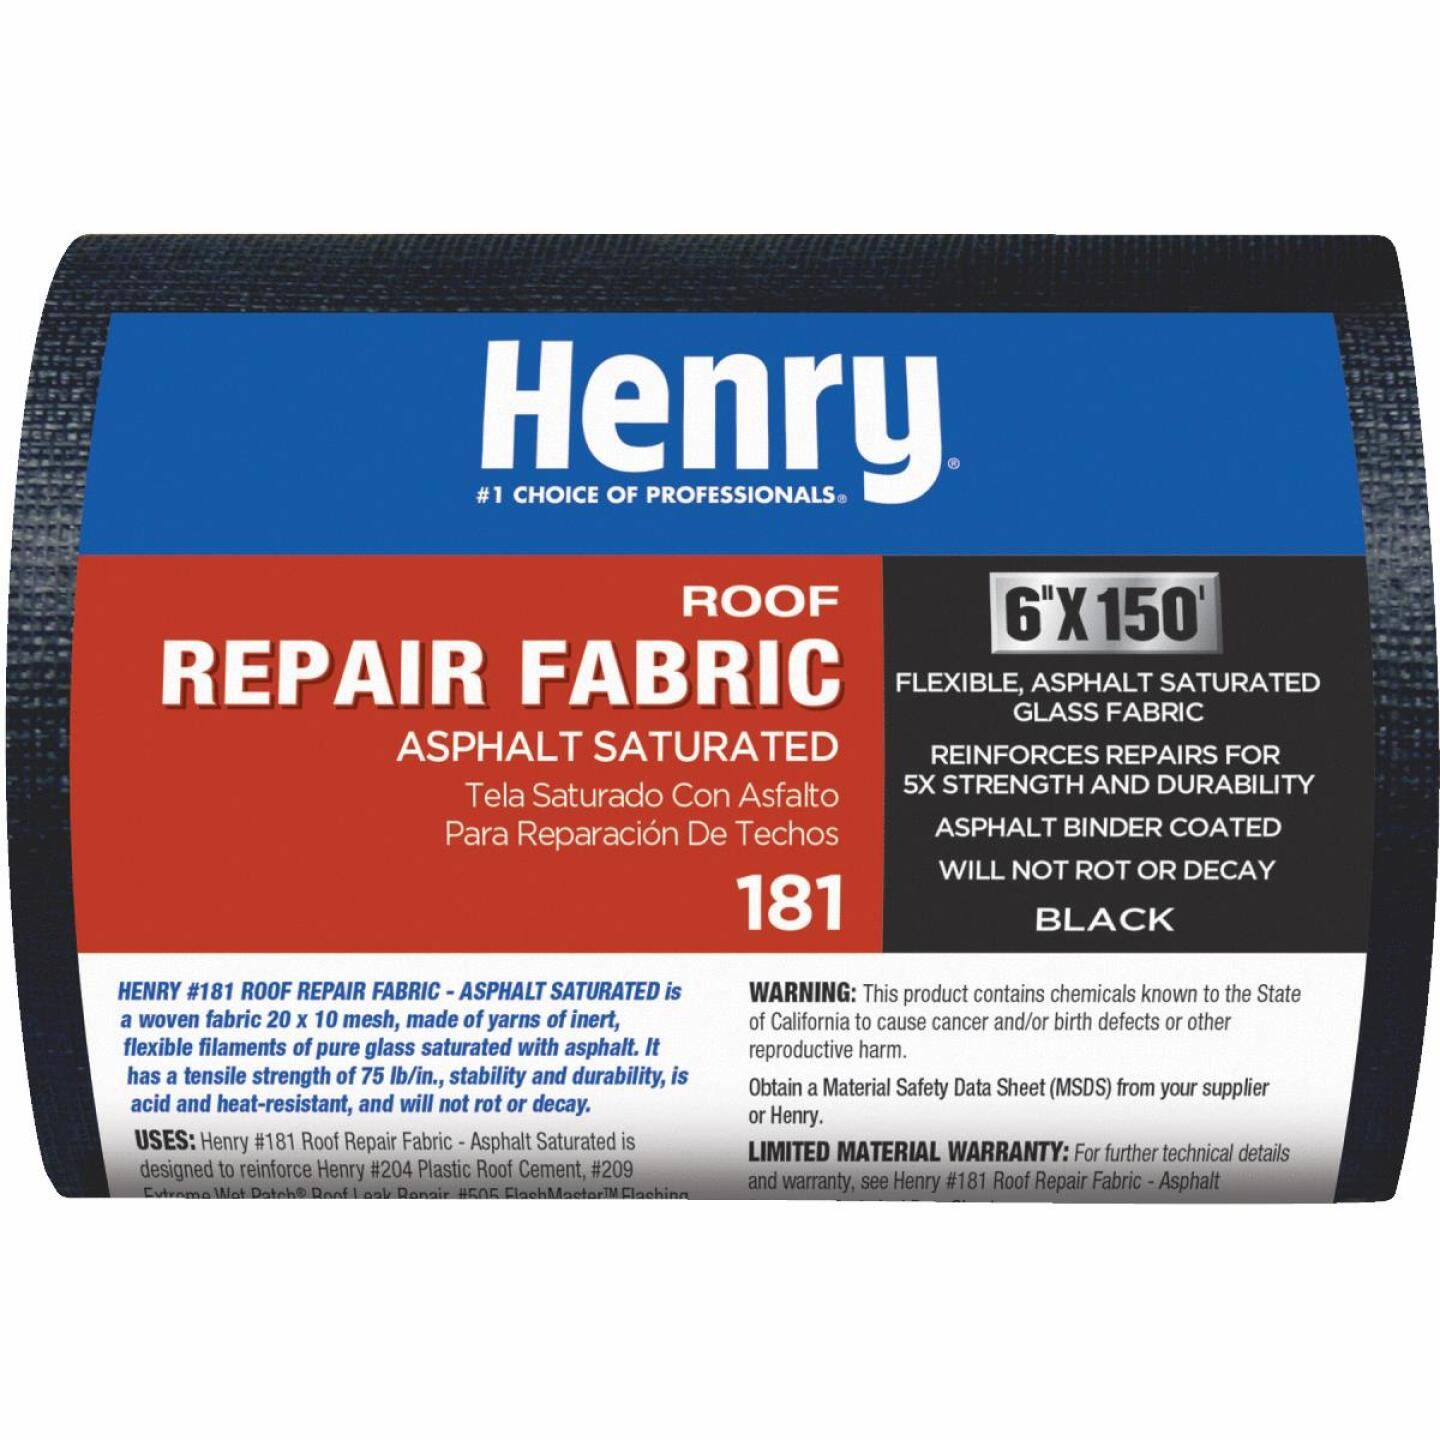 Henry 6 In. x 150 Ft. Glass Fabric Image 1